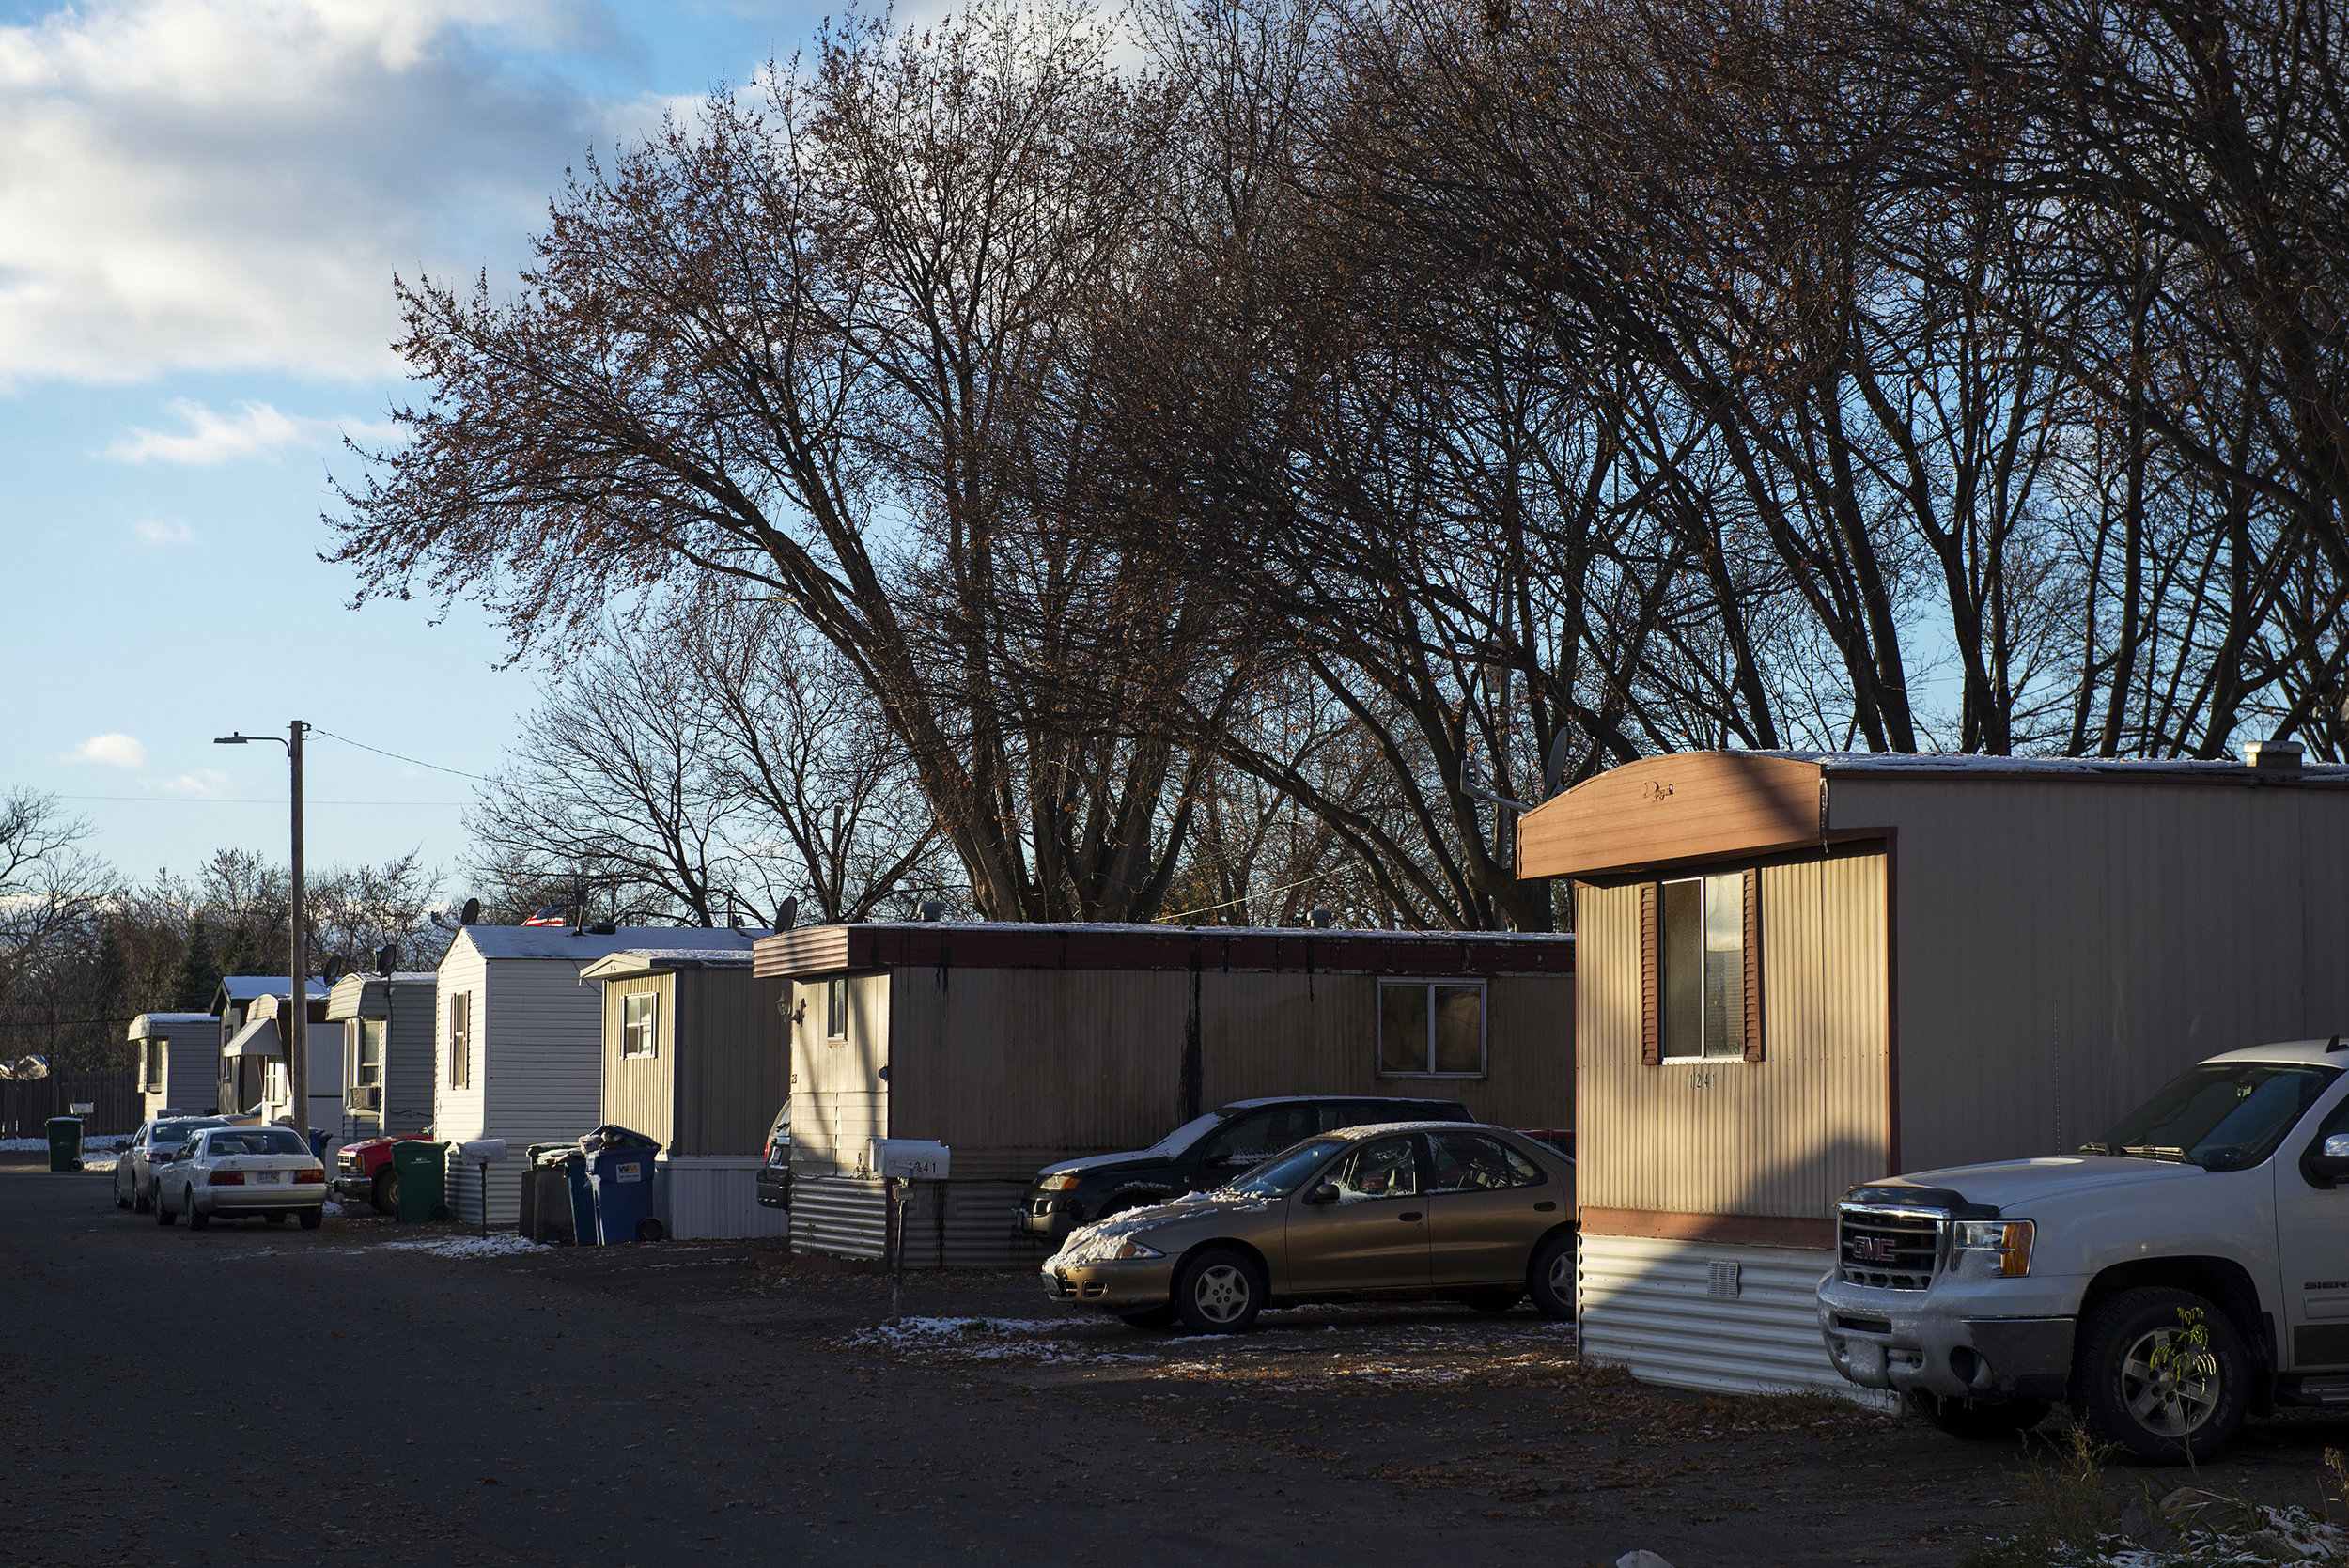 Mobile home park under coop ownership